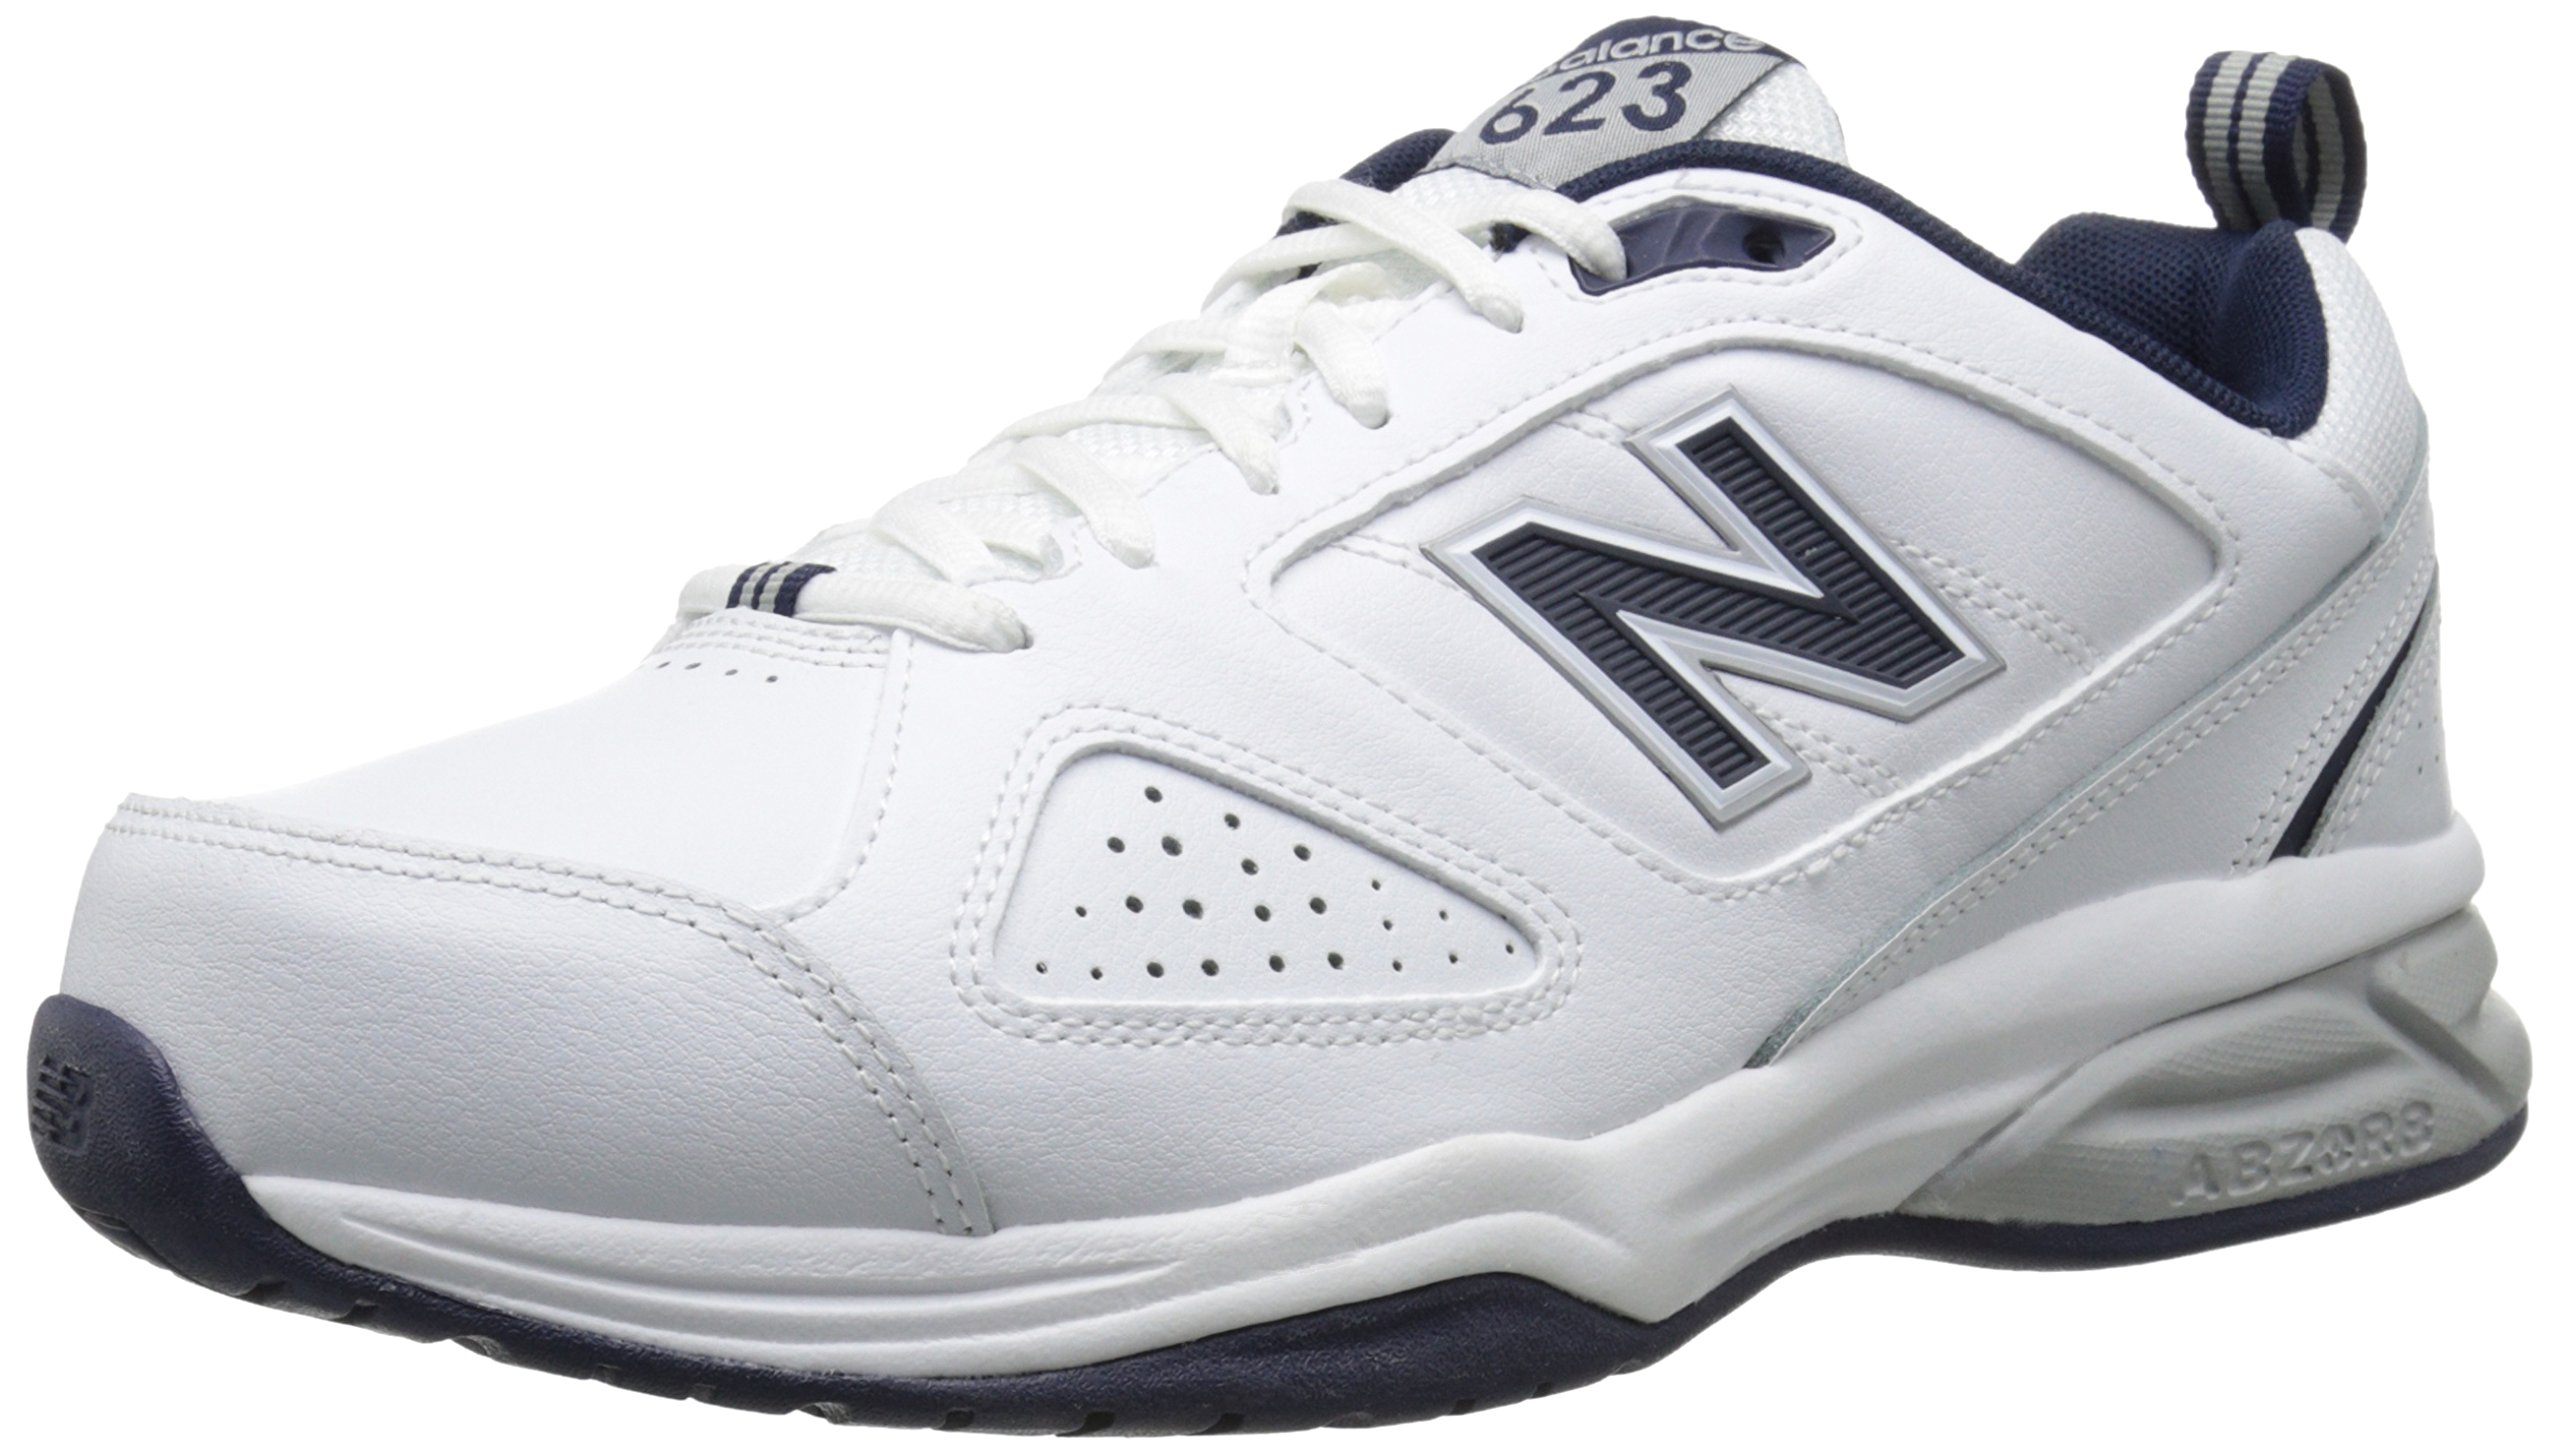 New Balance Men's MX623v3 Casual Comfort Training Shoe, White/Navy, 10.5 2E US by New Balance